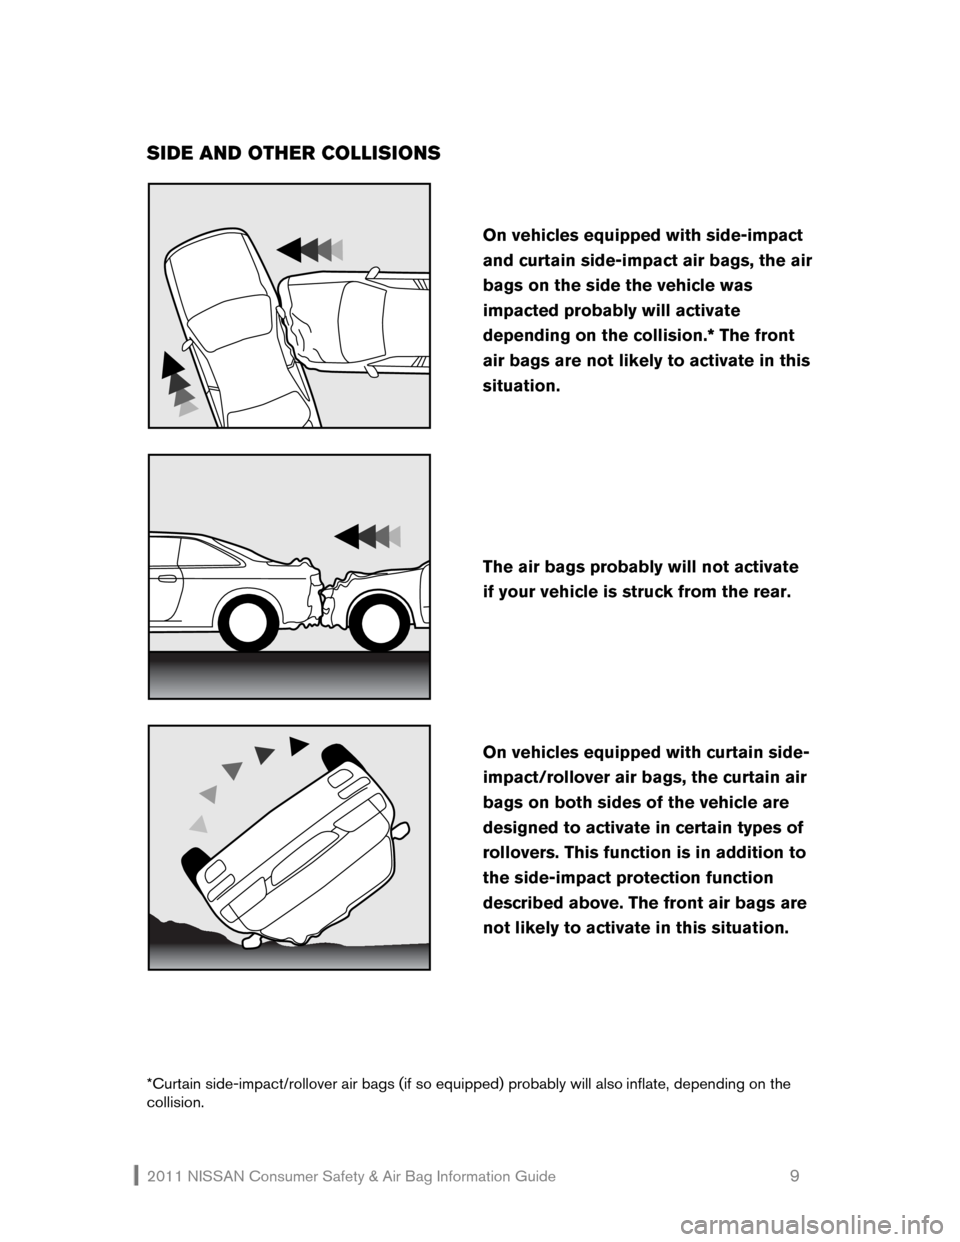 NISSAN VERSA 2011 1.G Consumer Safety Air Bag Information Guide, Page 10